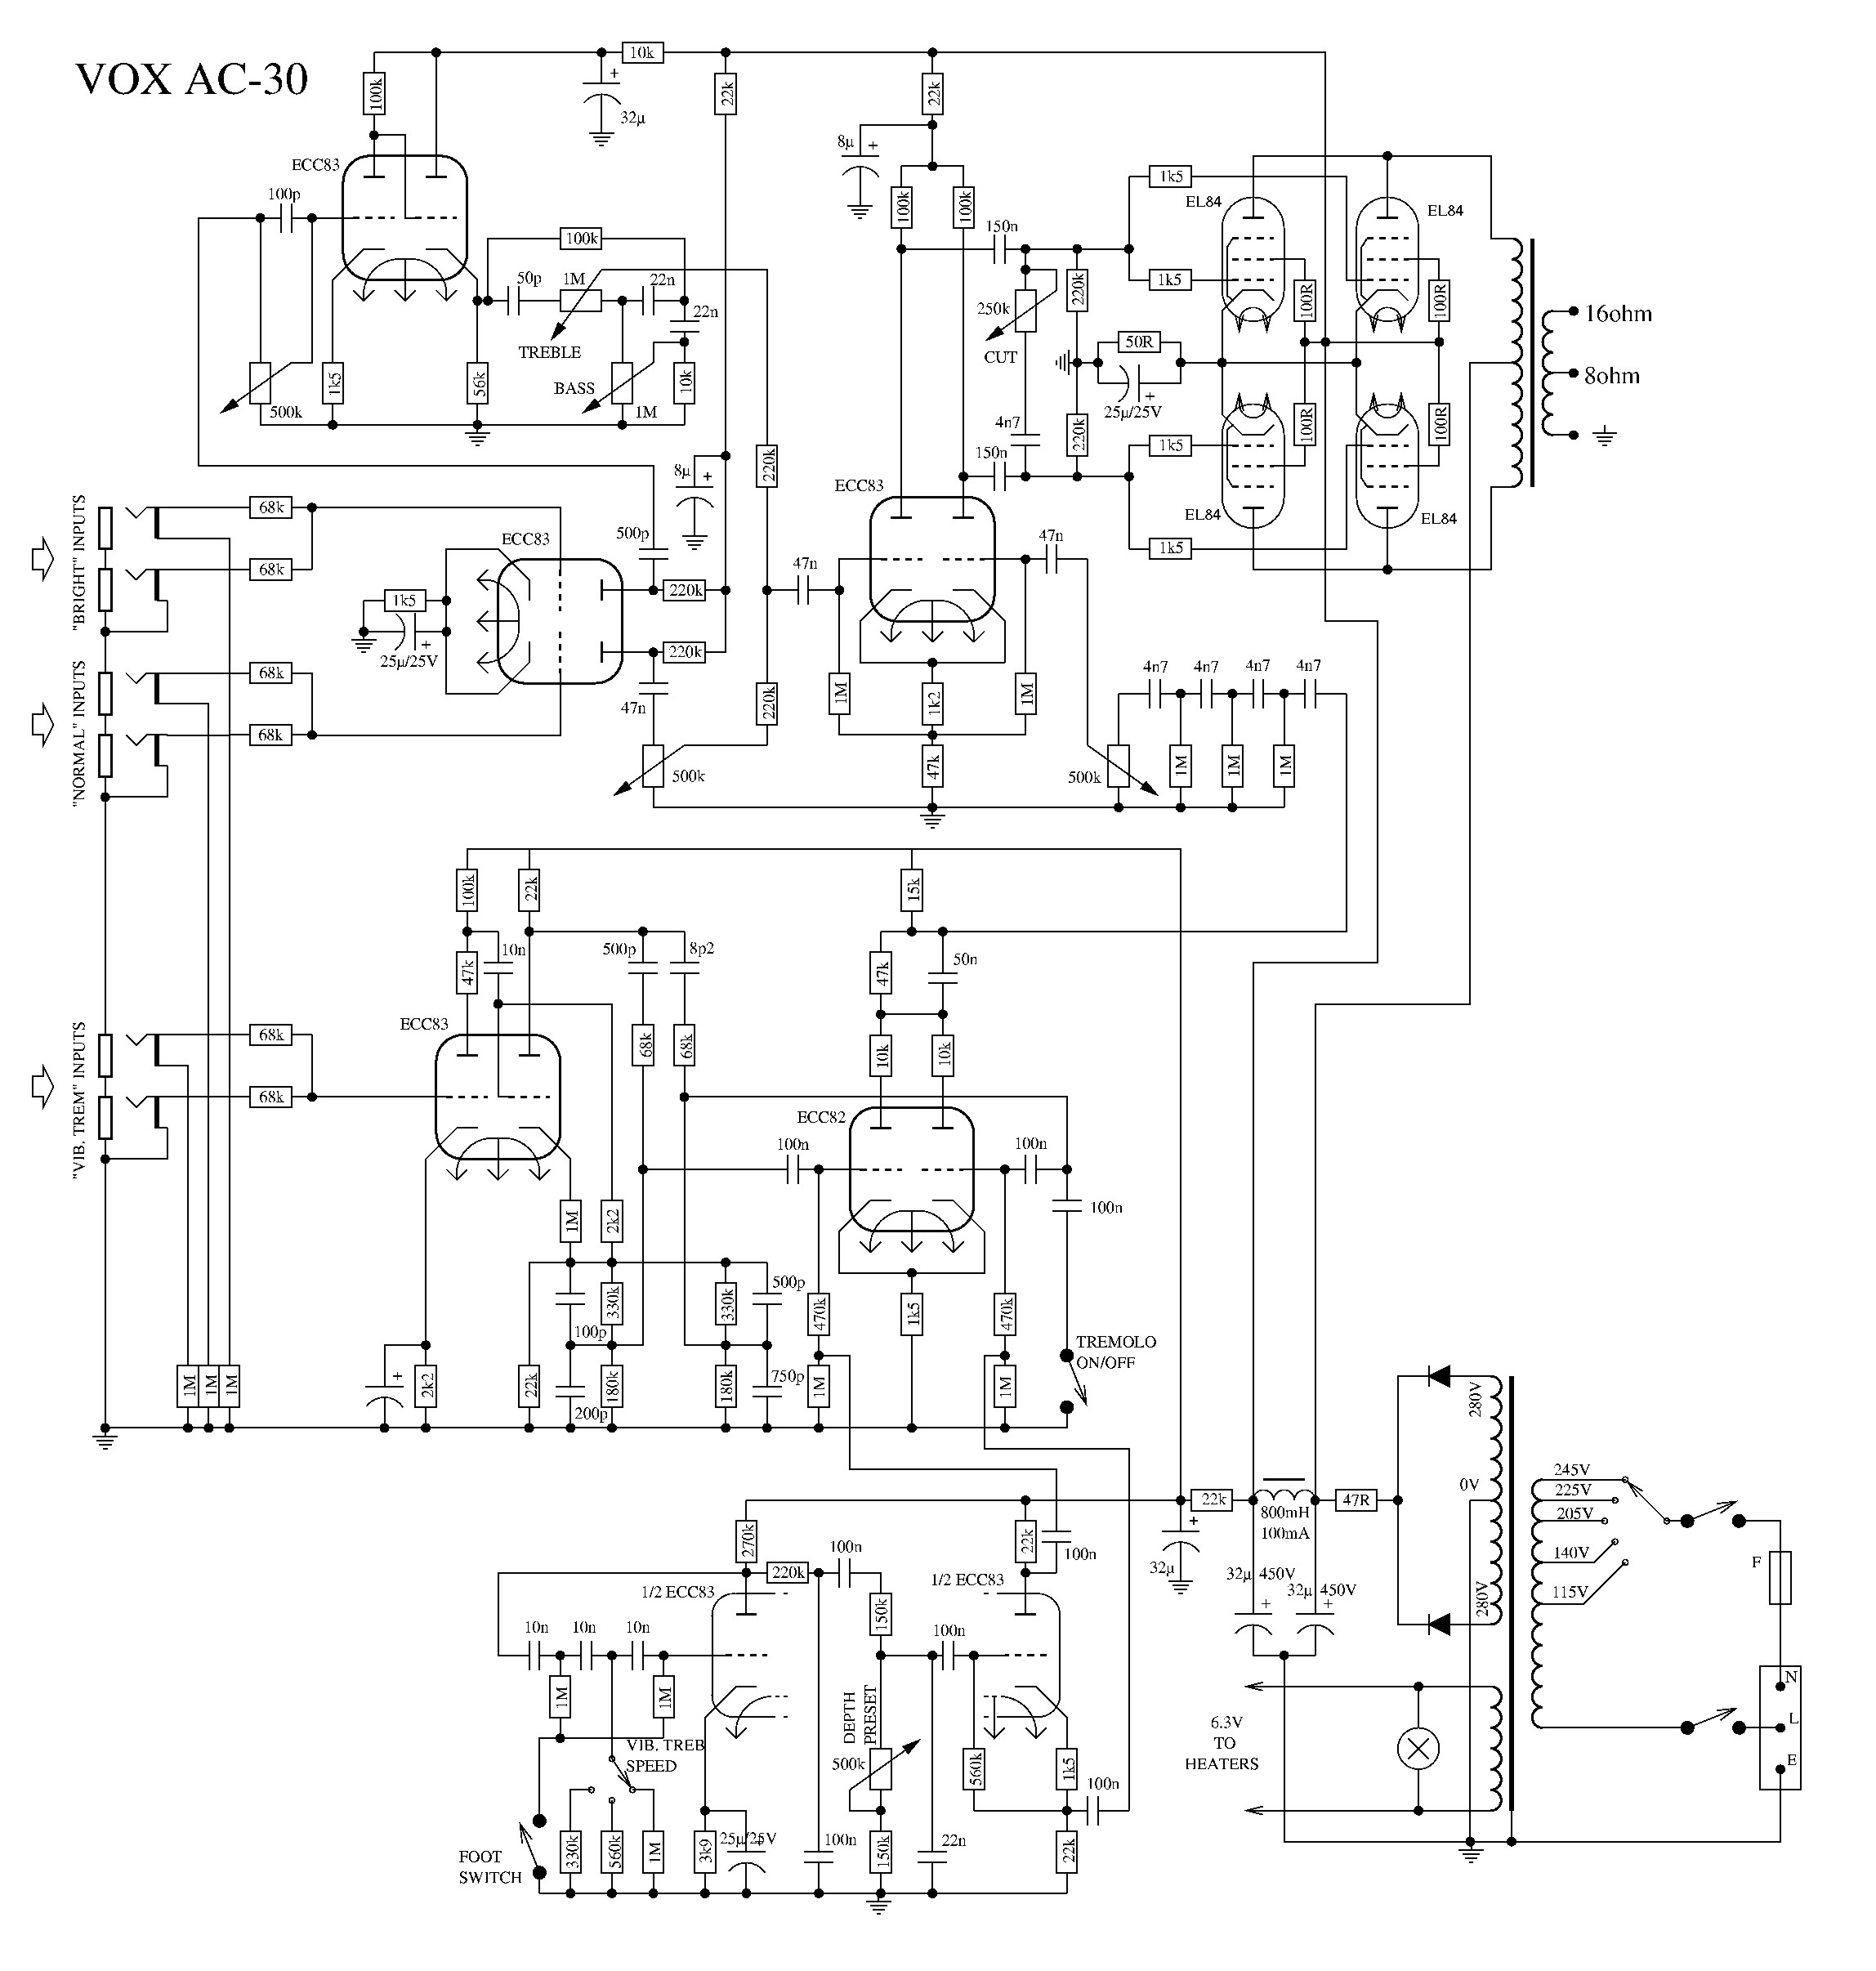 Similiar Vox Ac30 Schematic Keywords Wiring Dallas Get Free Image About